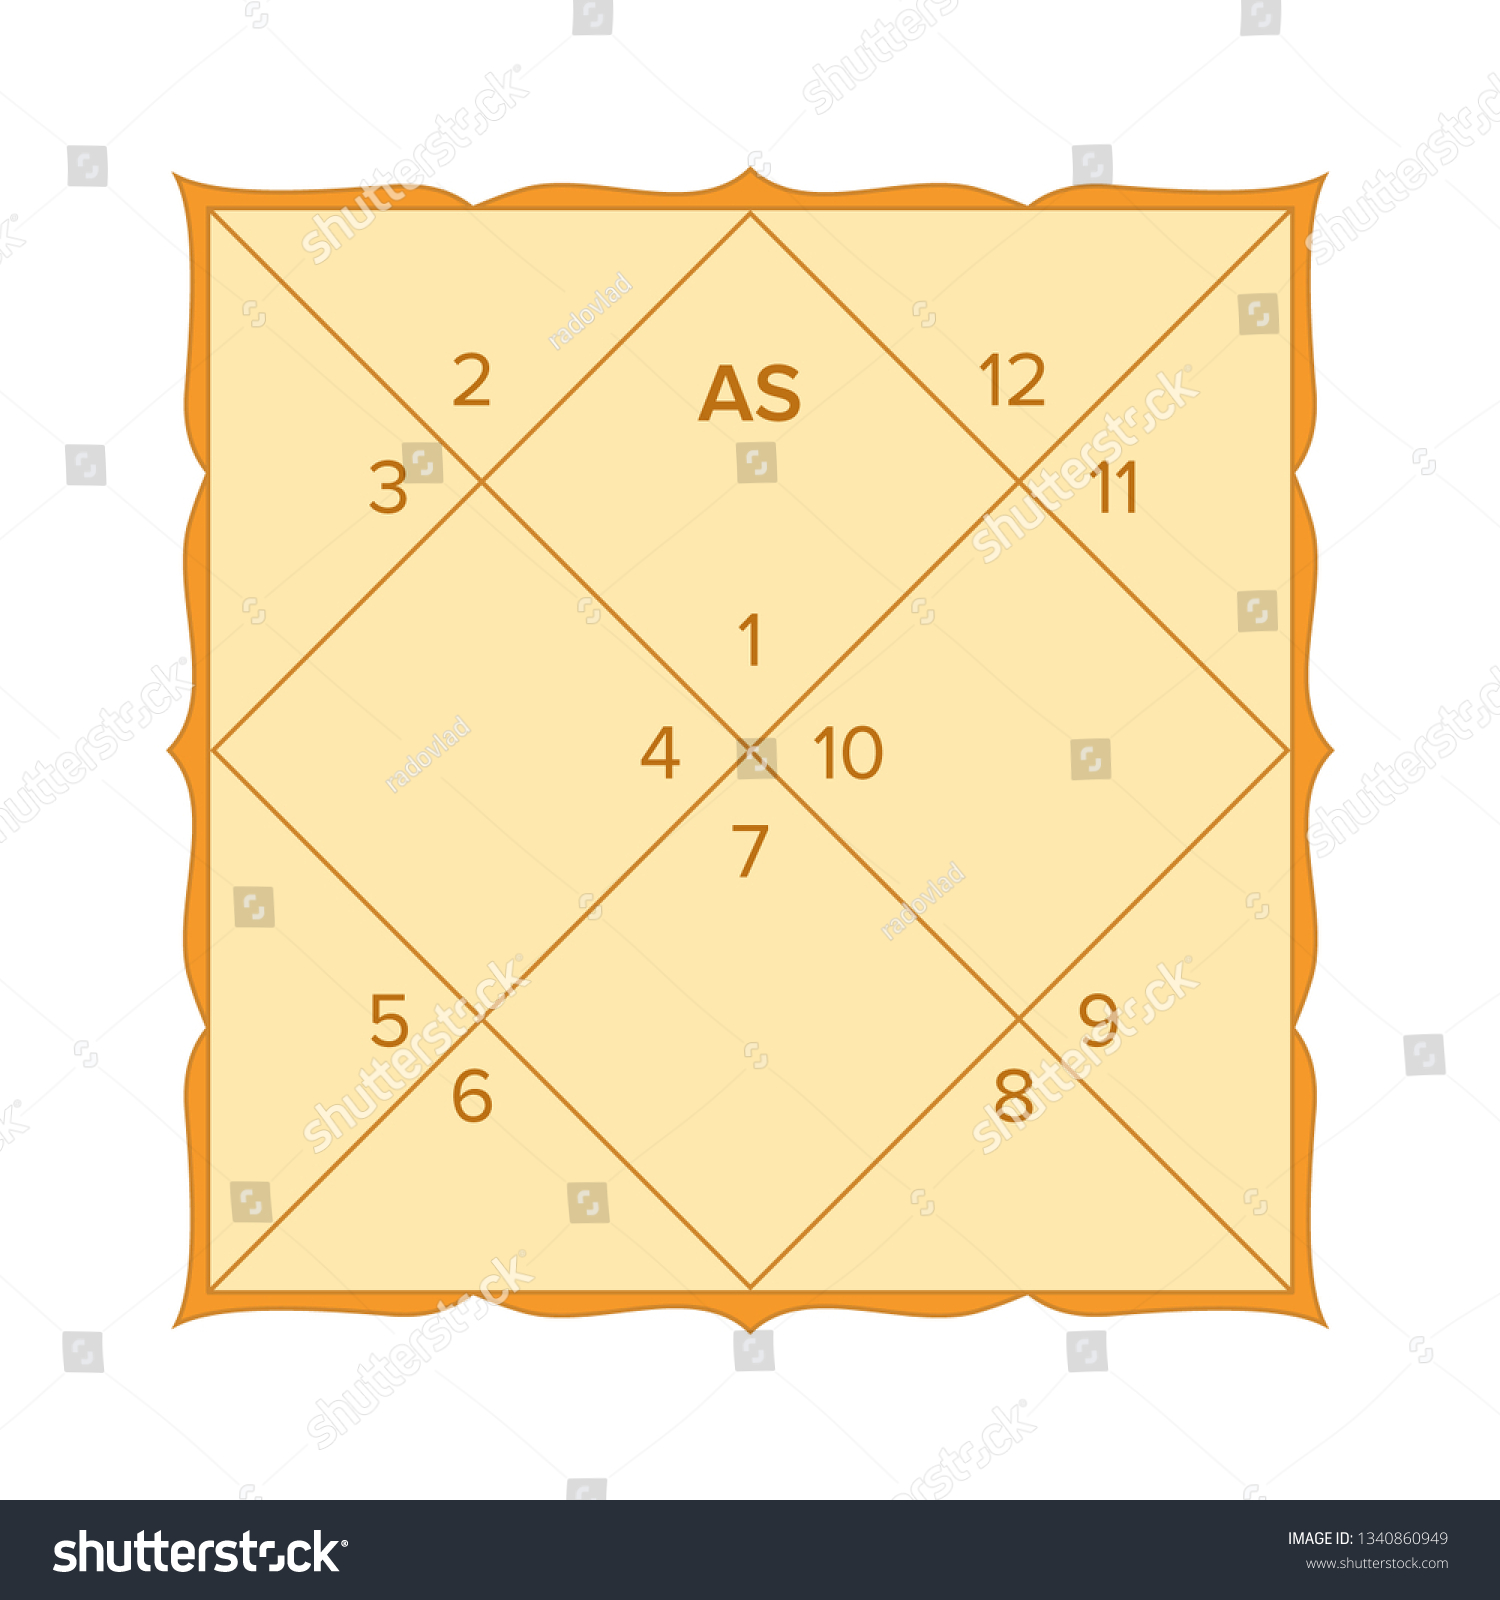 Vedic Astrology Birth Chart Template Northern Stock Vector ...